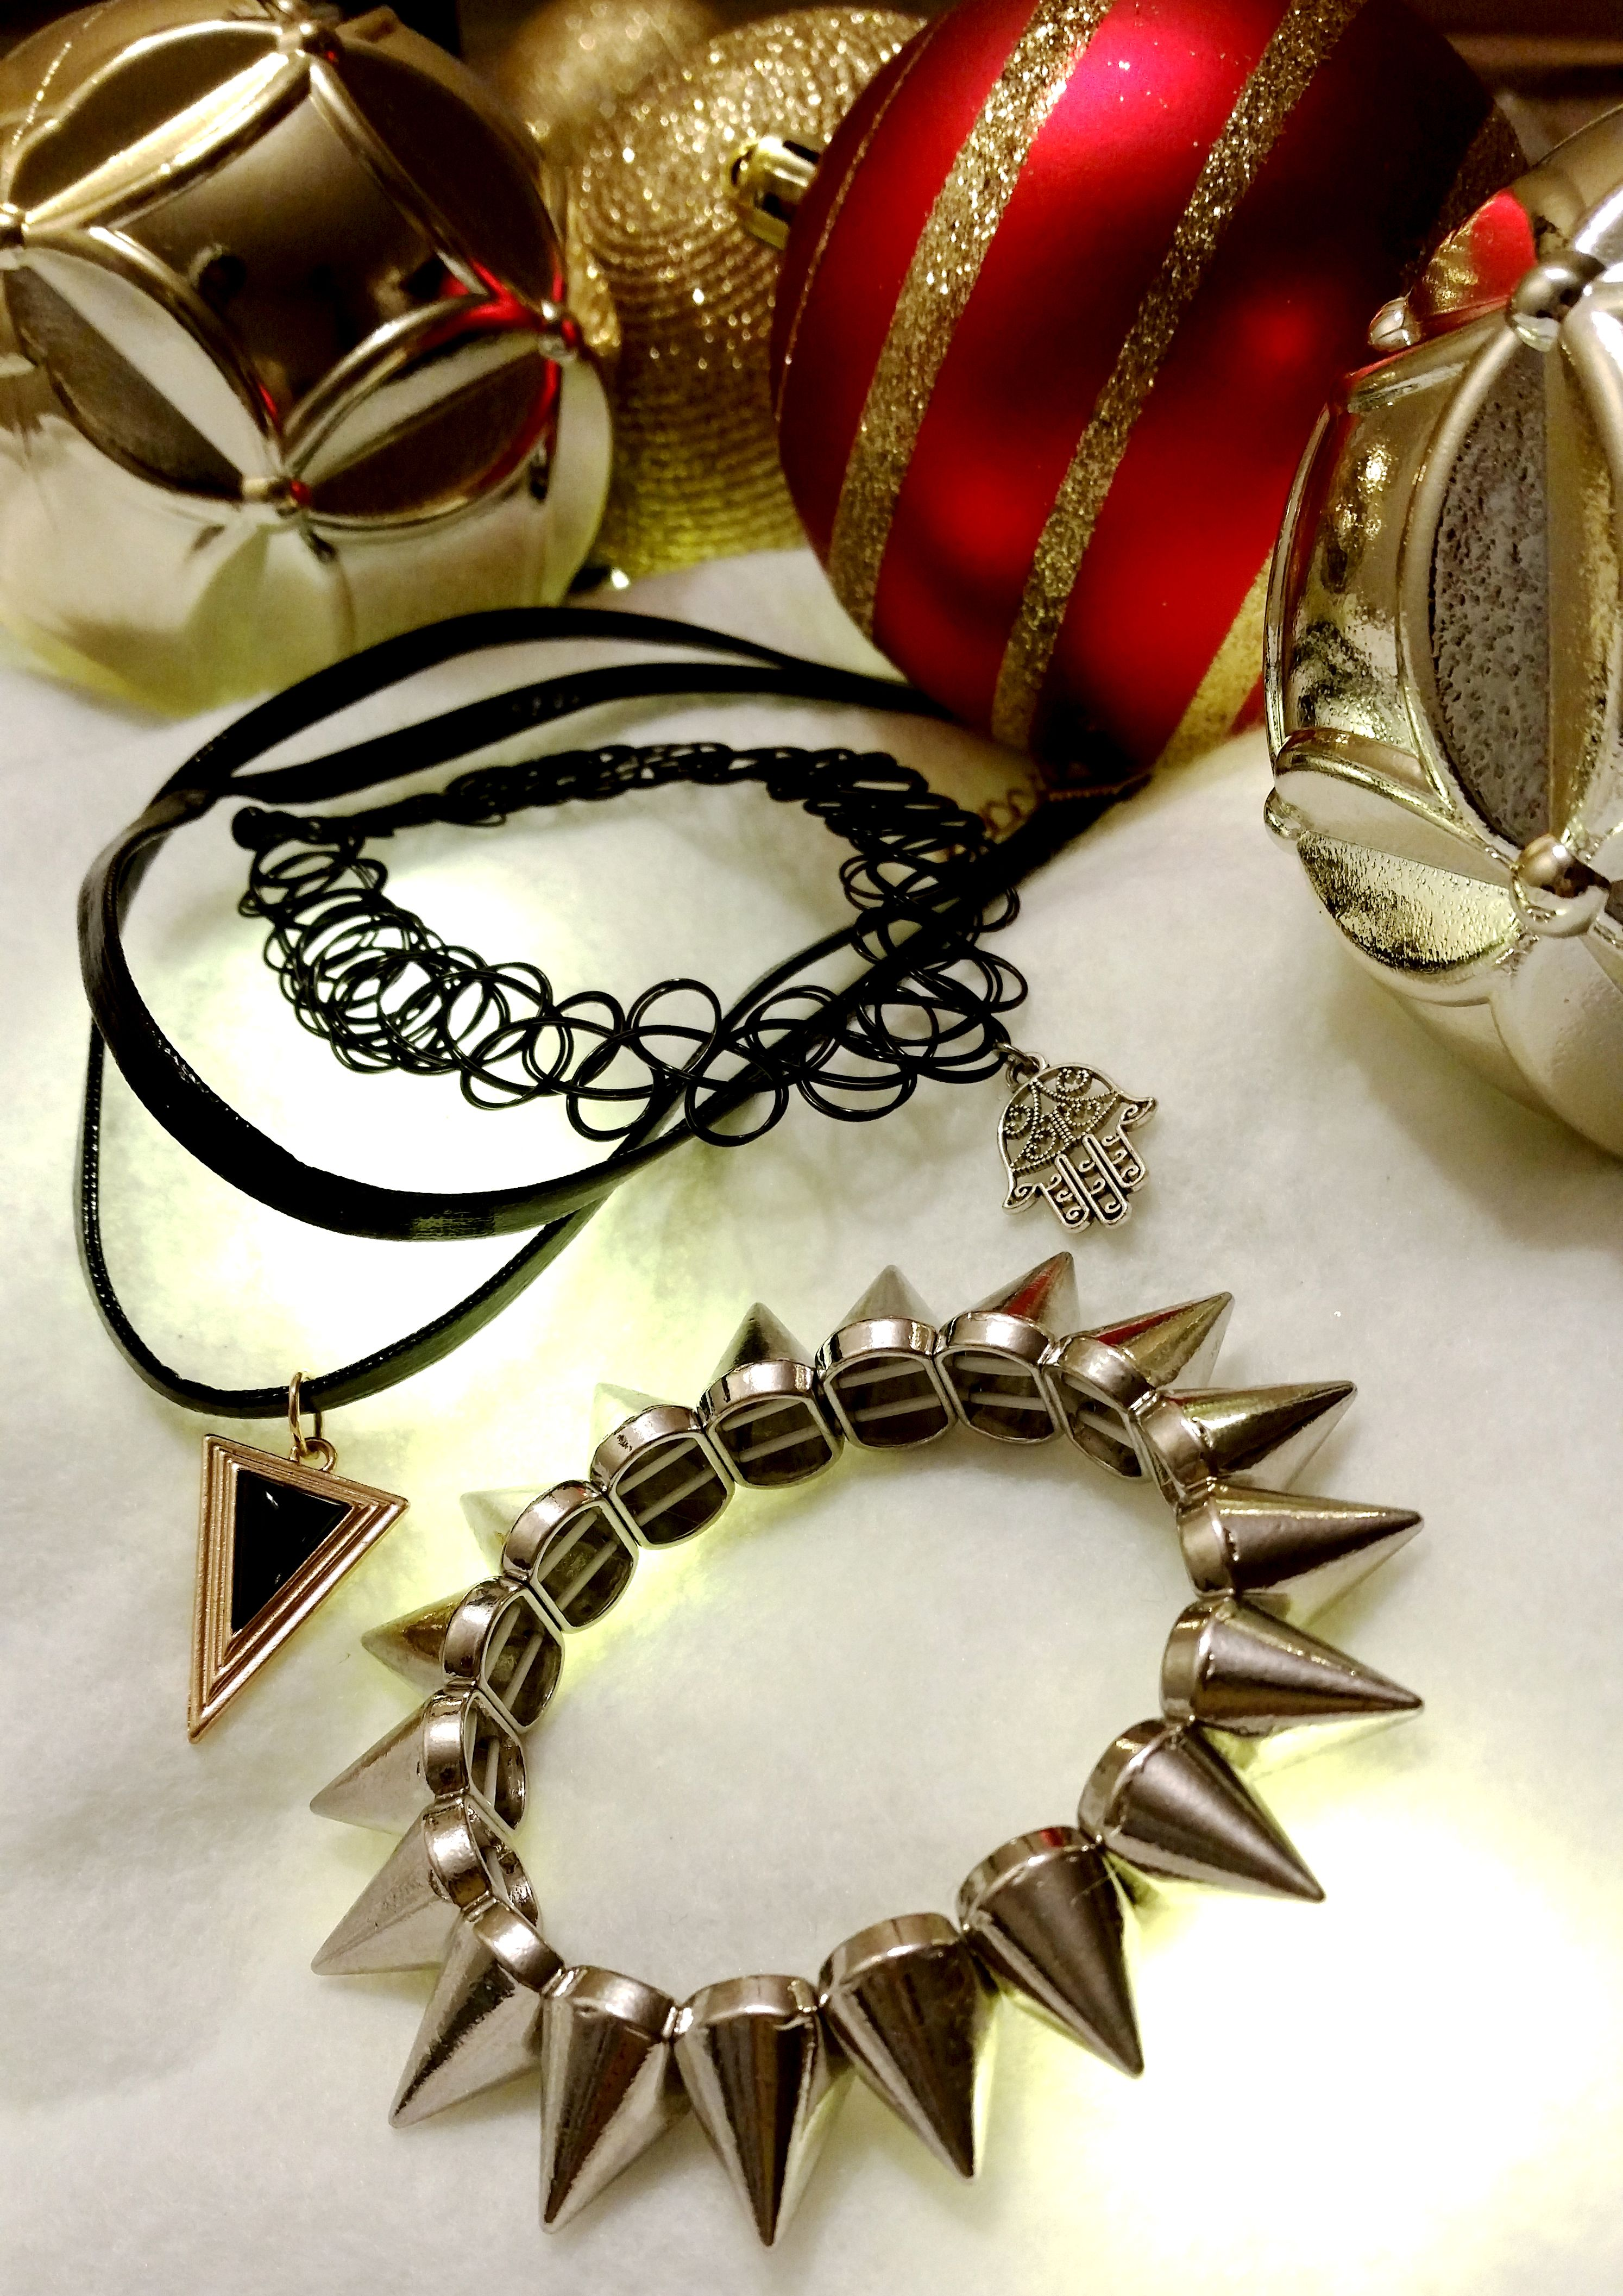 Gifts for badass chics! #grunge #spikes #choker #leather #jewelry ...